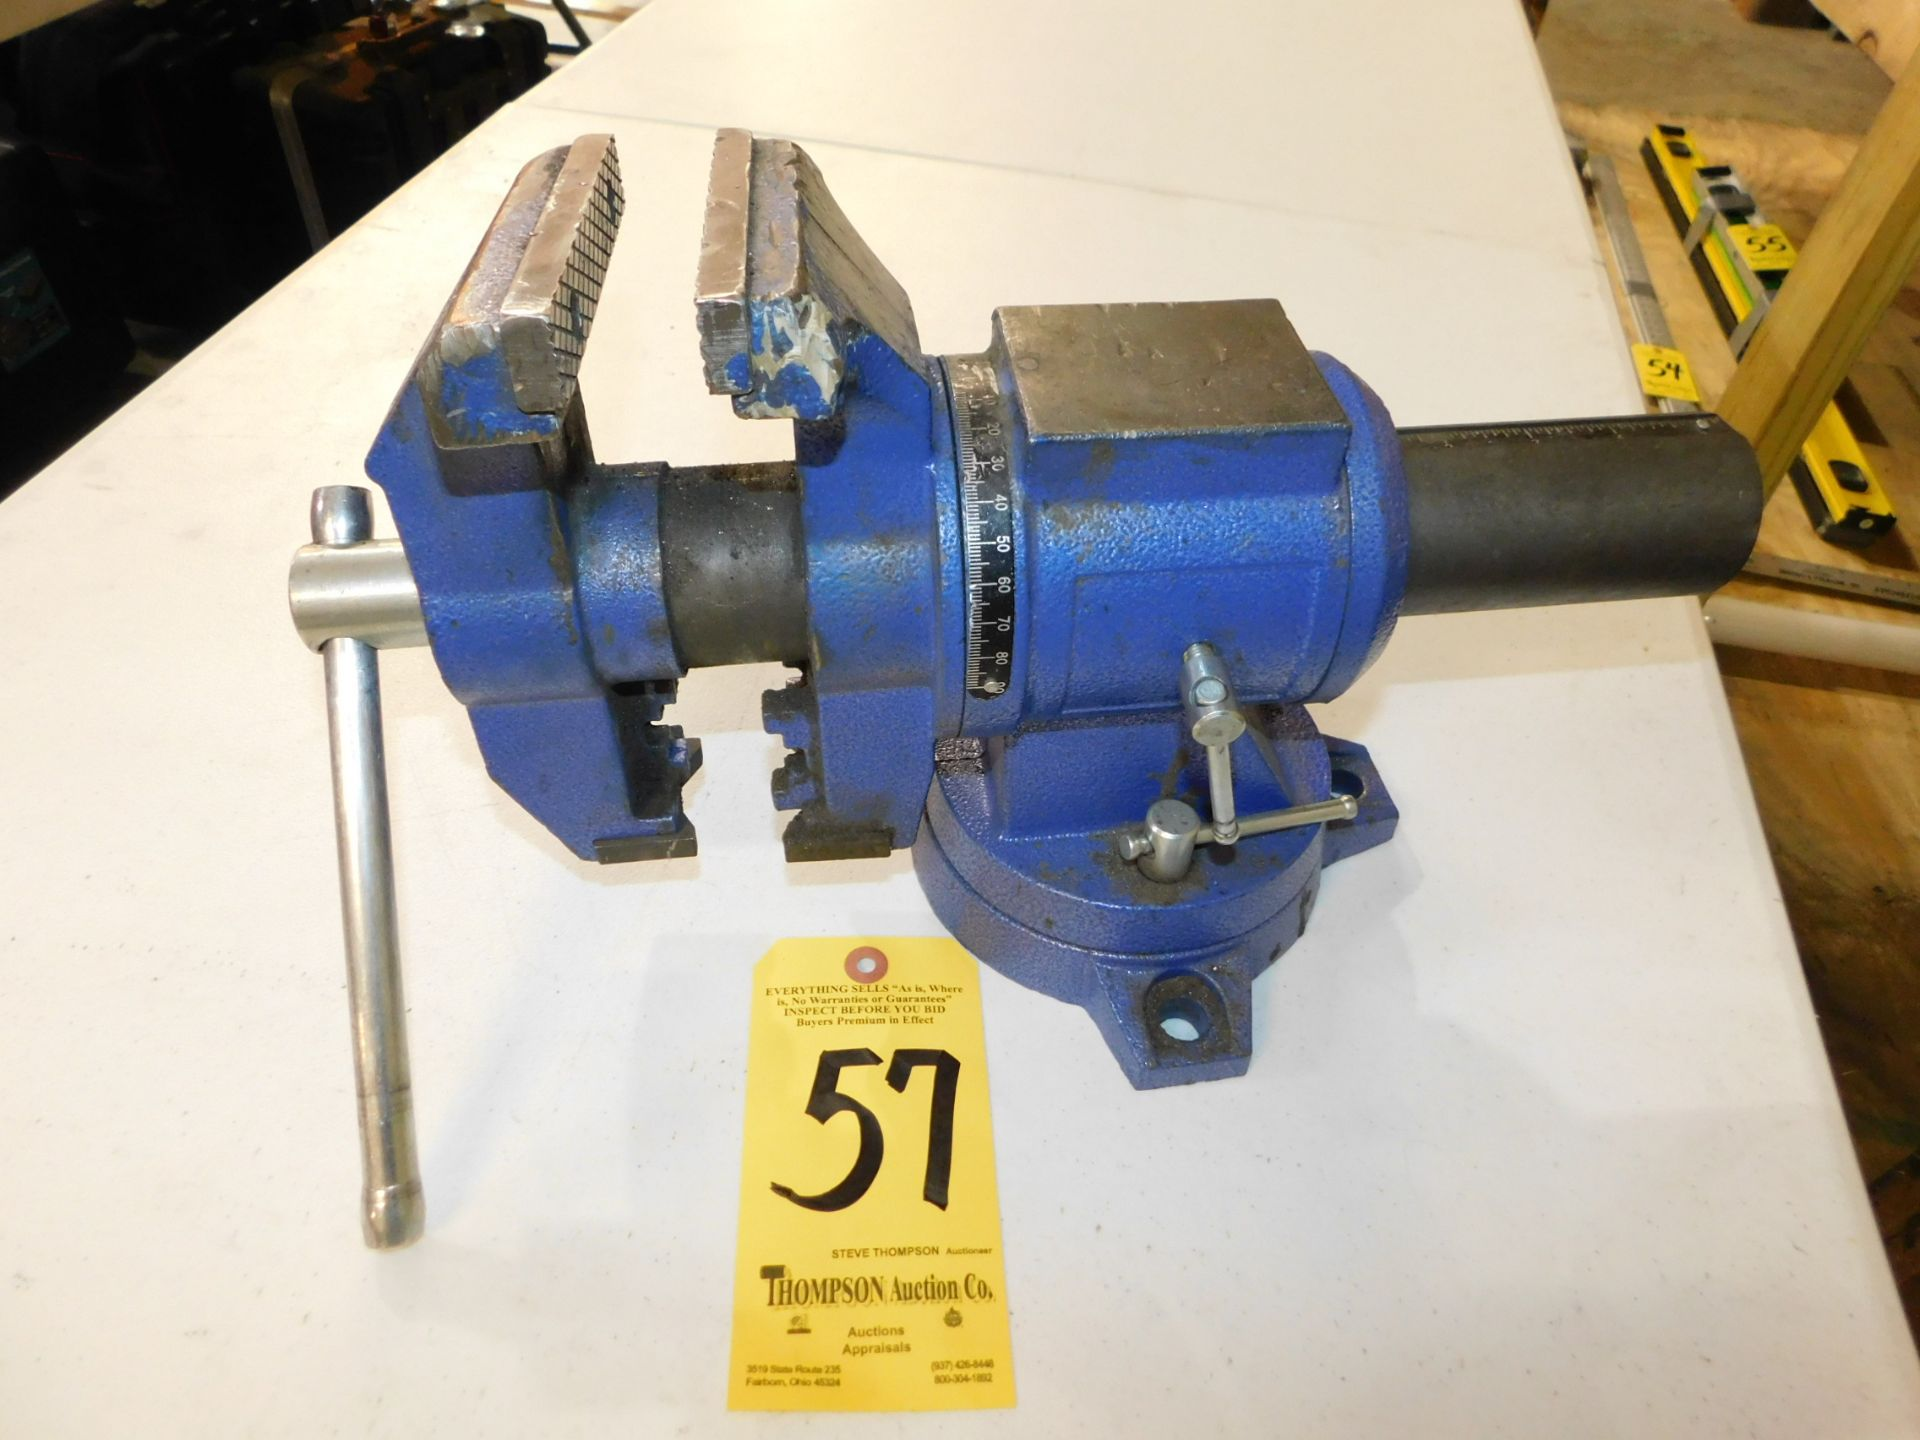 """Lot 57 - 5"""" Bench Vise, Lot Location 3204 Olympia Dr. A, Lafayette, IN 47909"""